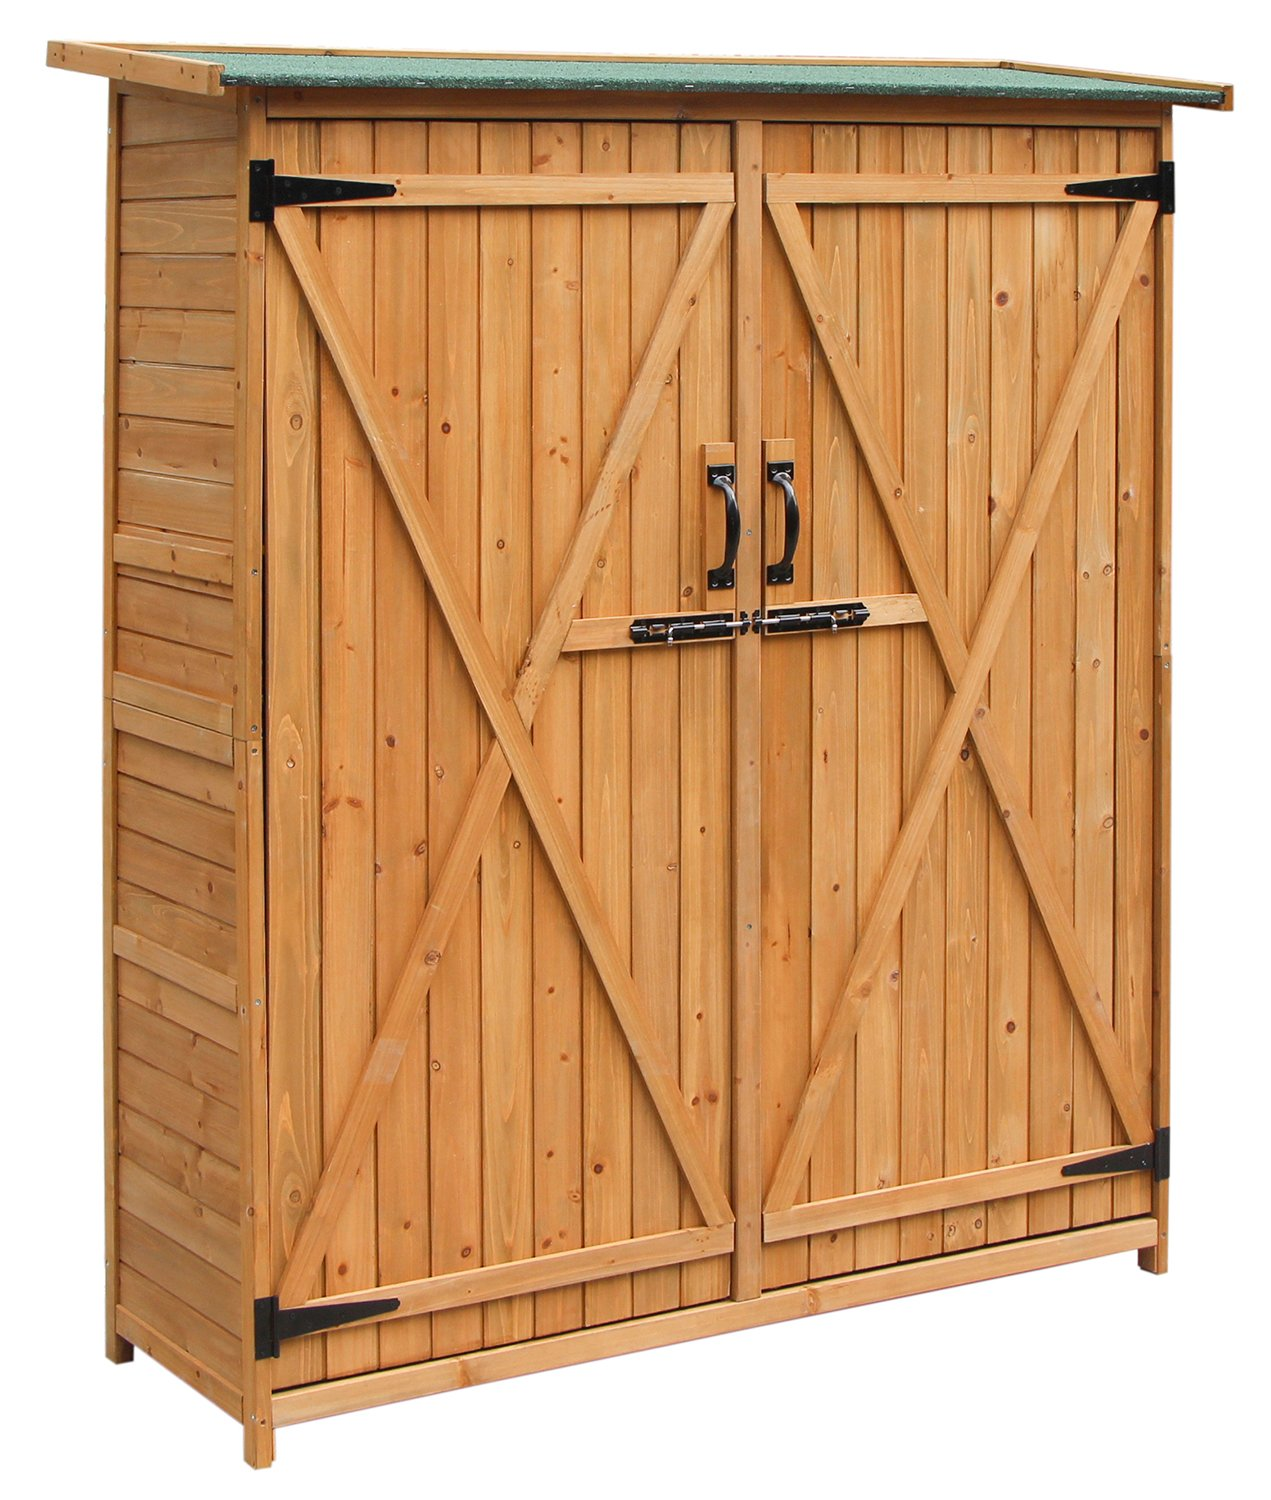 shed img fence garden bar kelowna outdoor planter sheds boxes formation deck